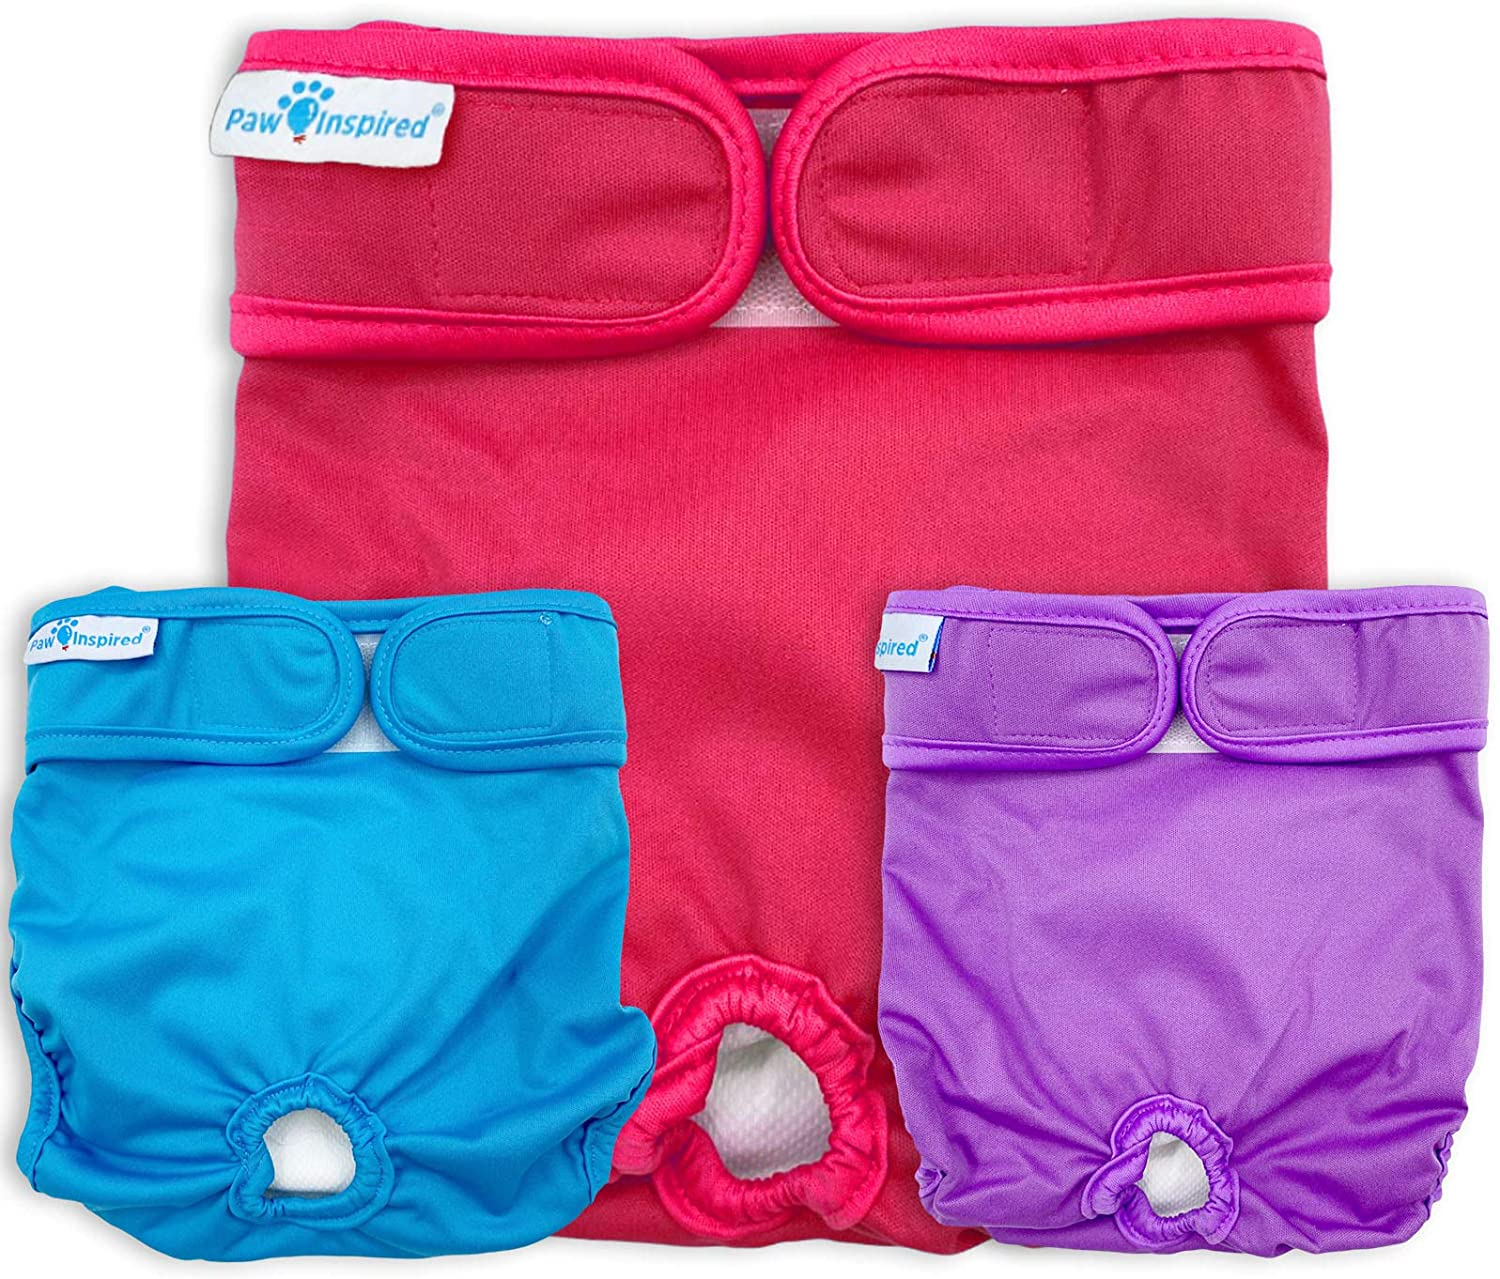 Paw Inspired Washable Dog Diapers | Reusable Dog Diapers | Washable Female Dog Diapers | Cloth Dog Diapers for Dogs in Heat, or Dog Incontinence Diapers